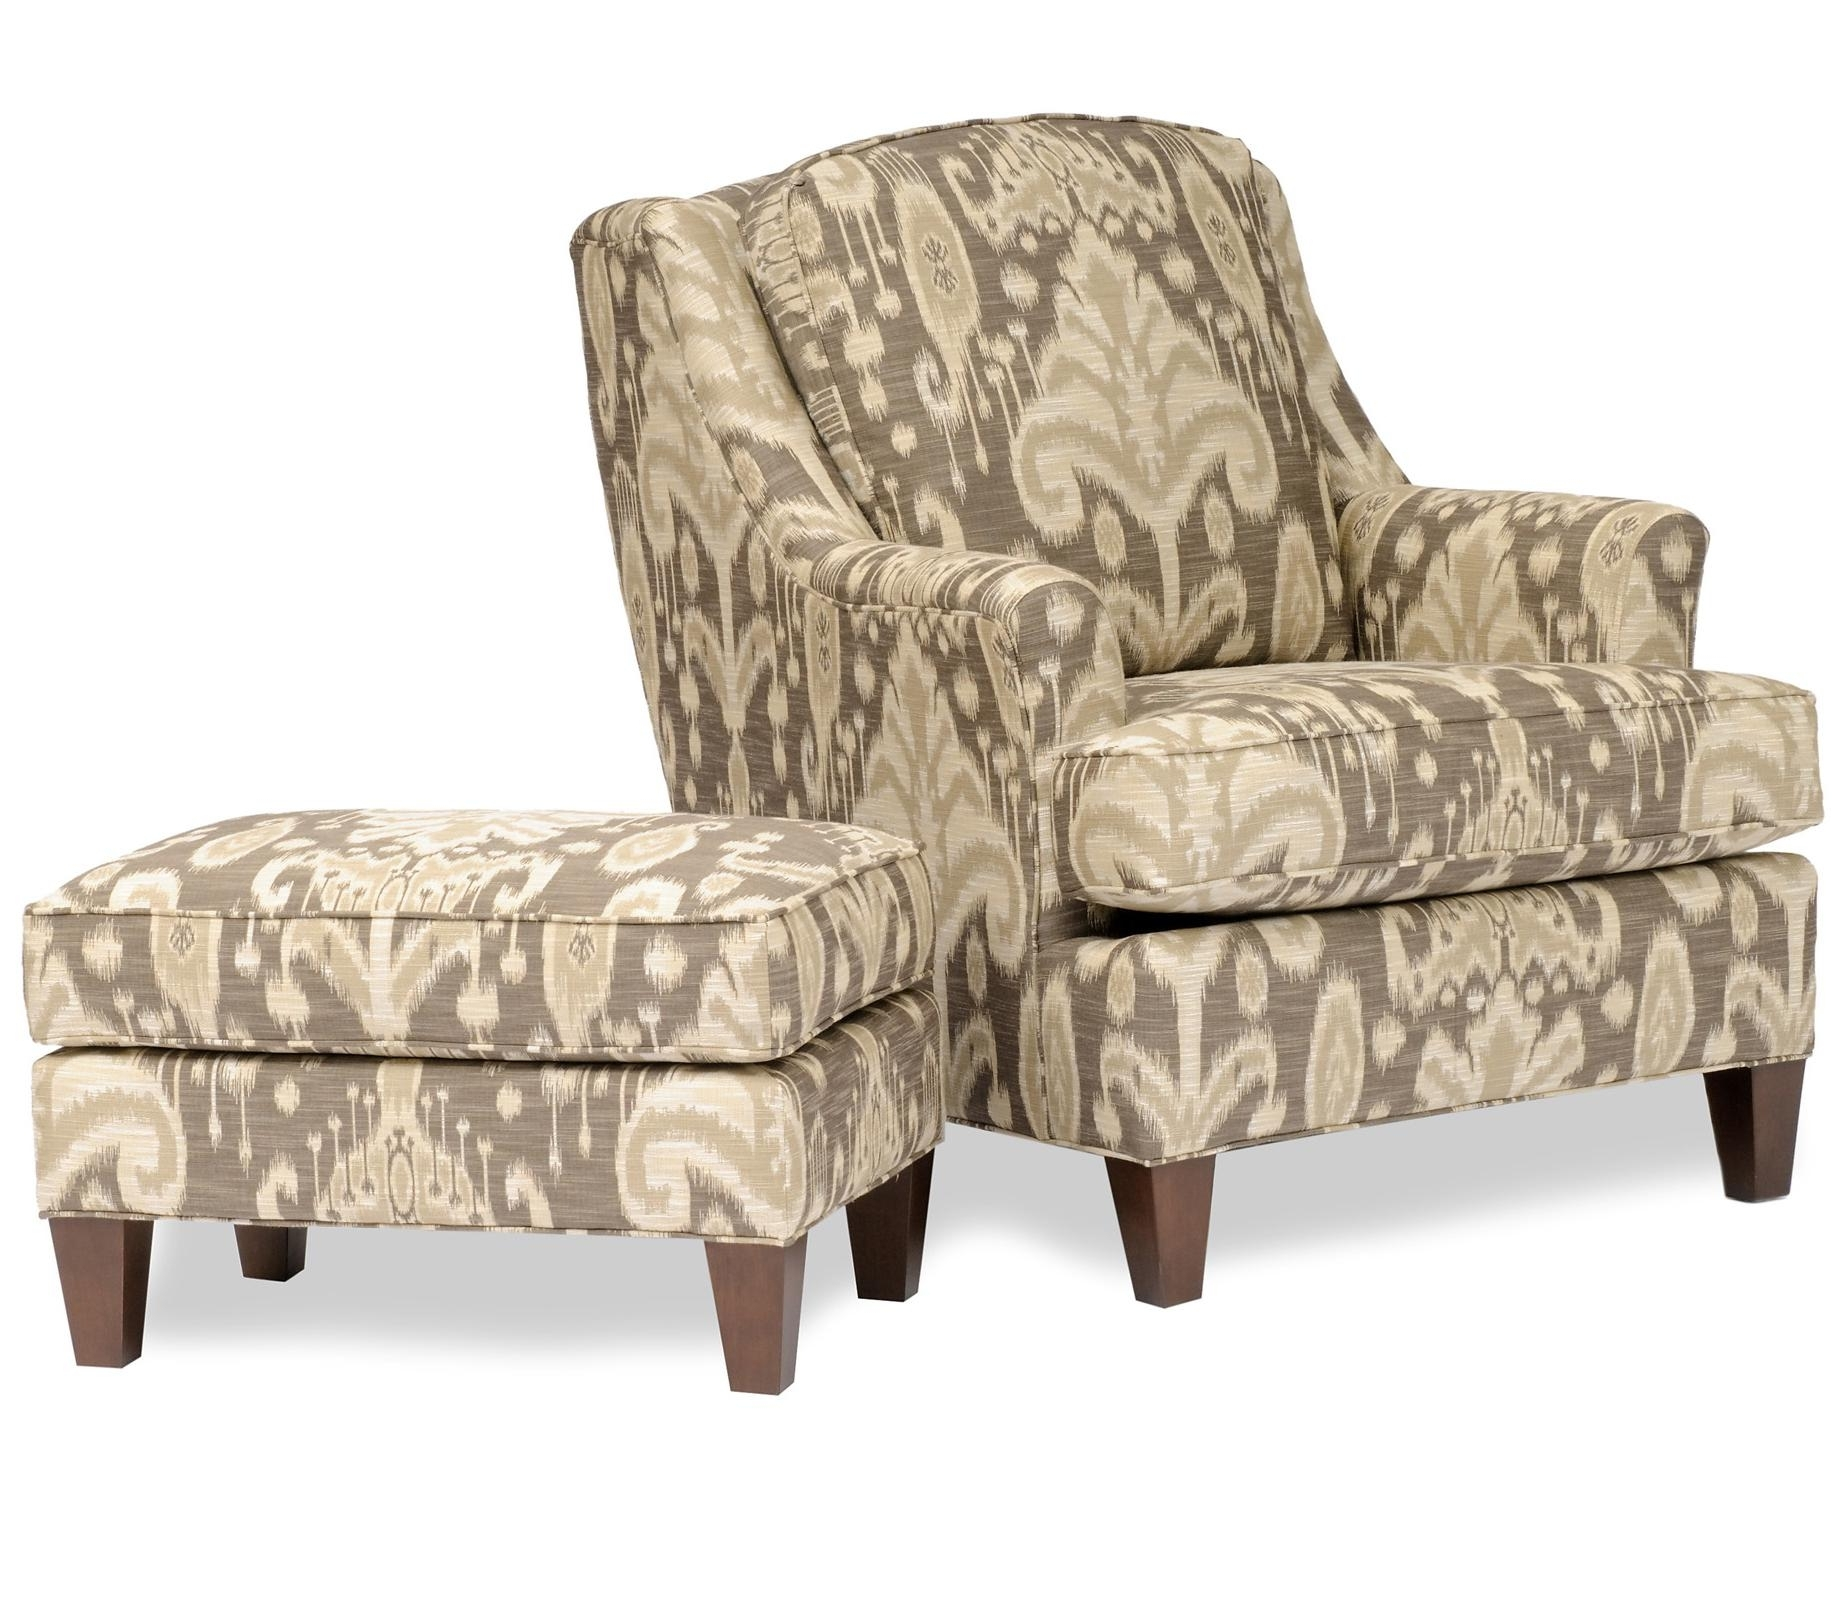 Chairs With Ottoman With Best And Newest Chairs : Cool Accent Chairs With Grey Patterned Ottoman Occasional (View 13 of 20)